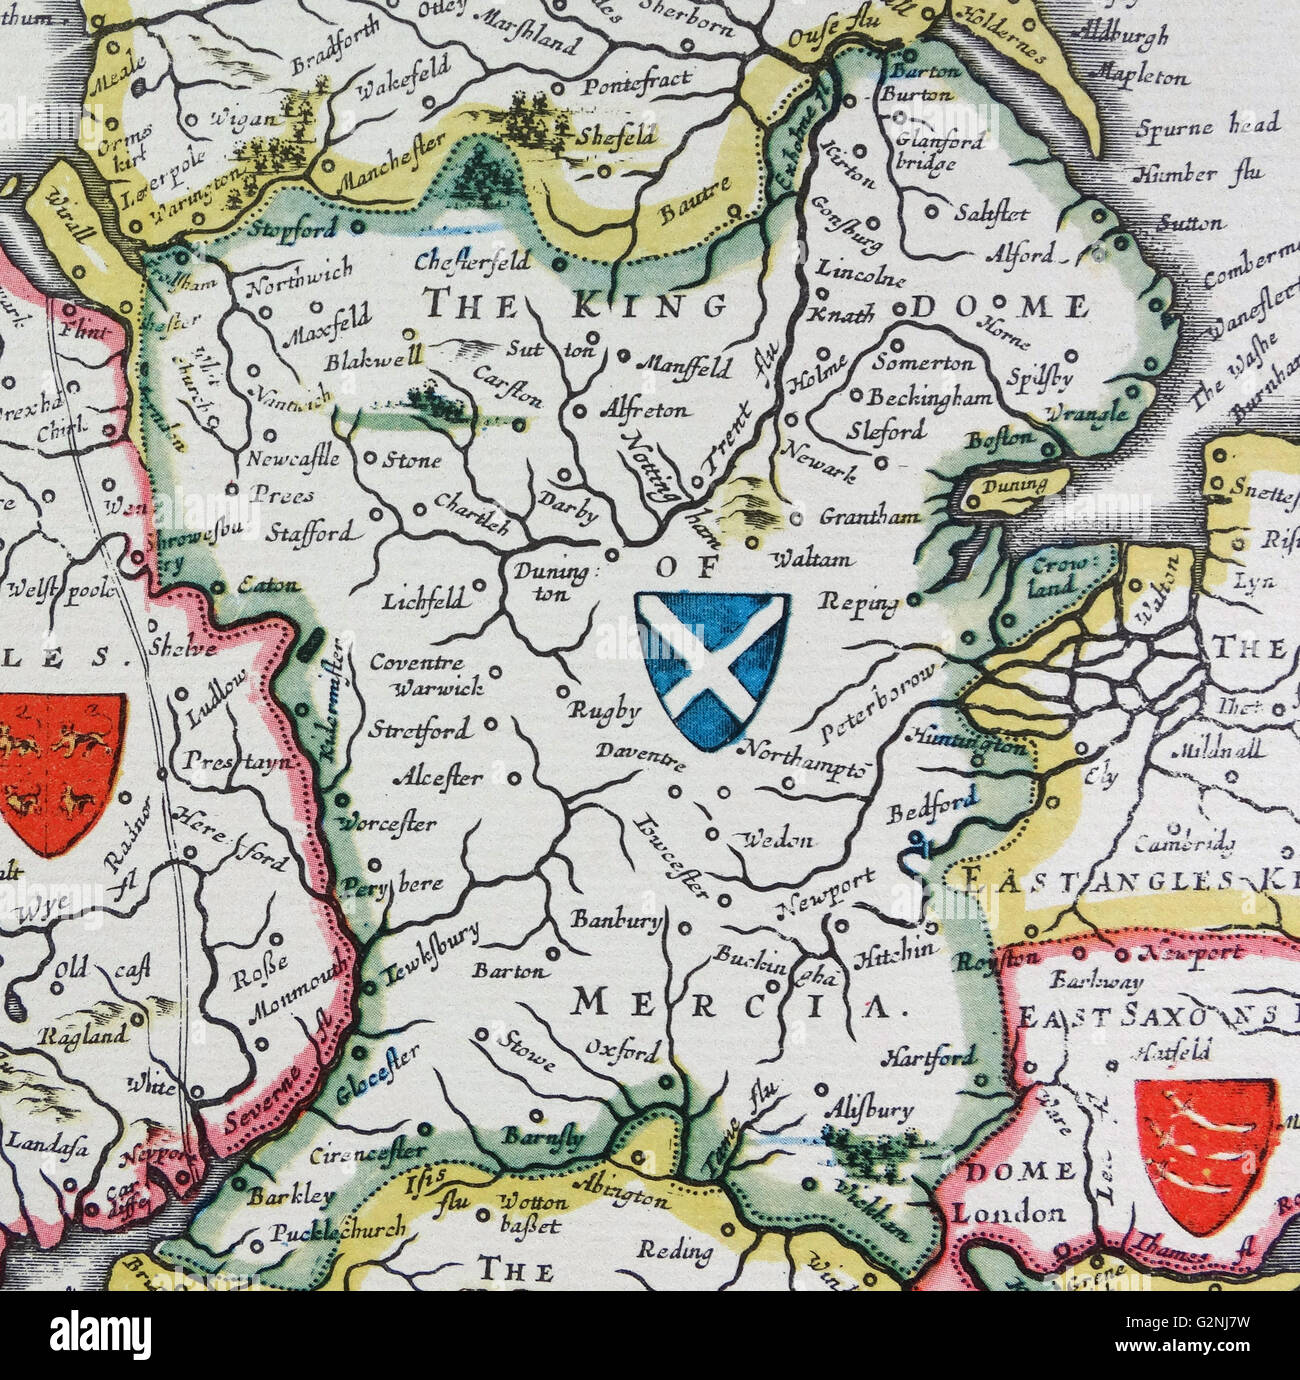 Shield of Mercia, from the Heptarchy; a collective name applied to the Anglo-Saxon kingdoms of south, east, and central England during late antiquity and the early Middle Ages, Detail from an antique map of Britain, by the Dutch cartographer Willem Blaeu in Atlas Novus (Amsterdam 1635) Stock Photo